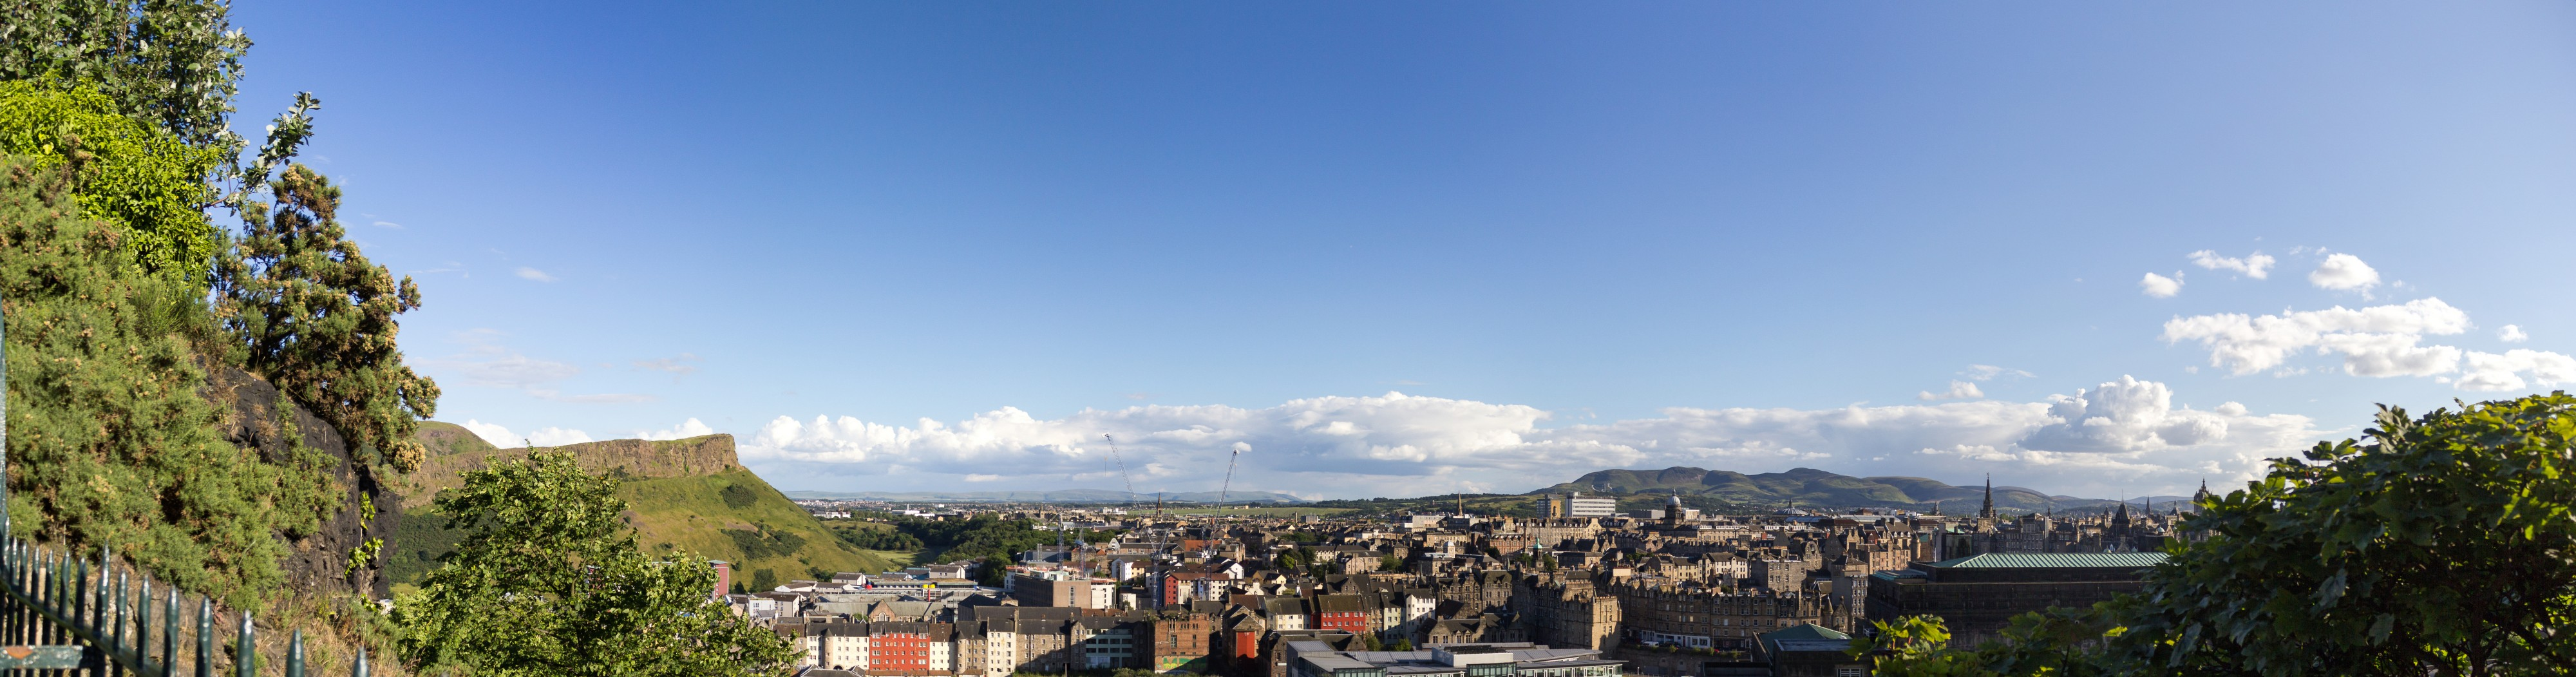 Edinburgh panorama 2014-07-05 (01)